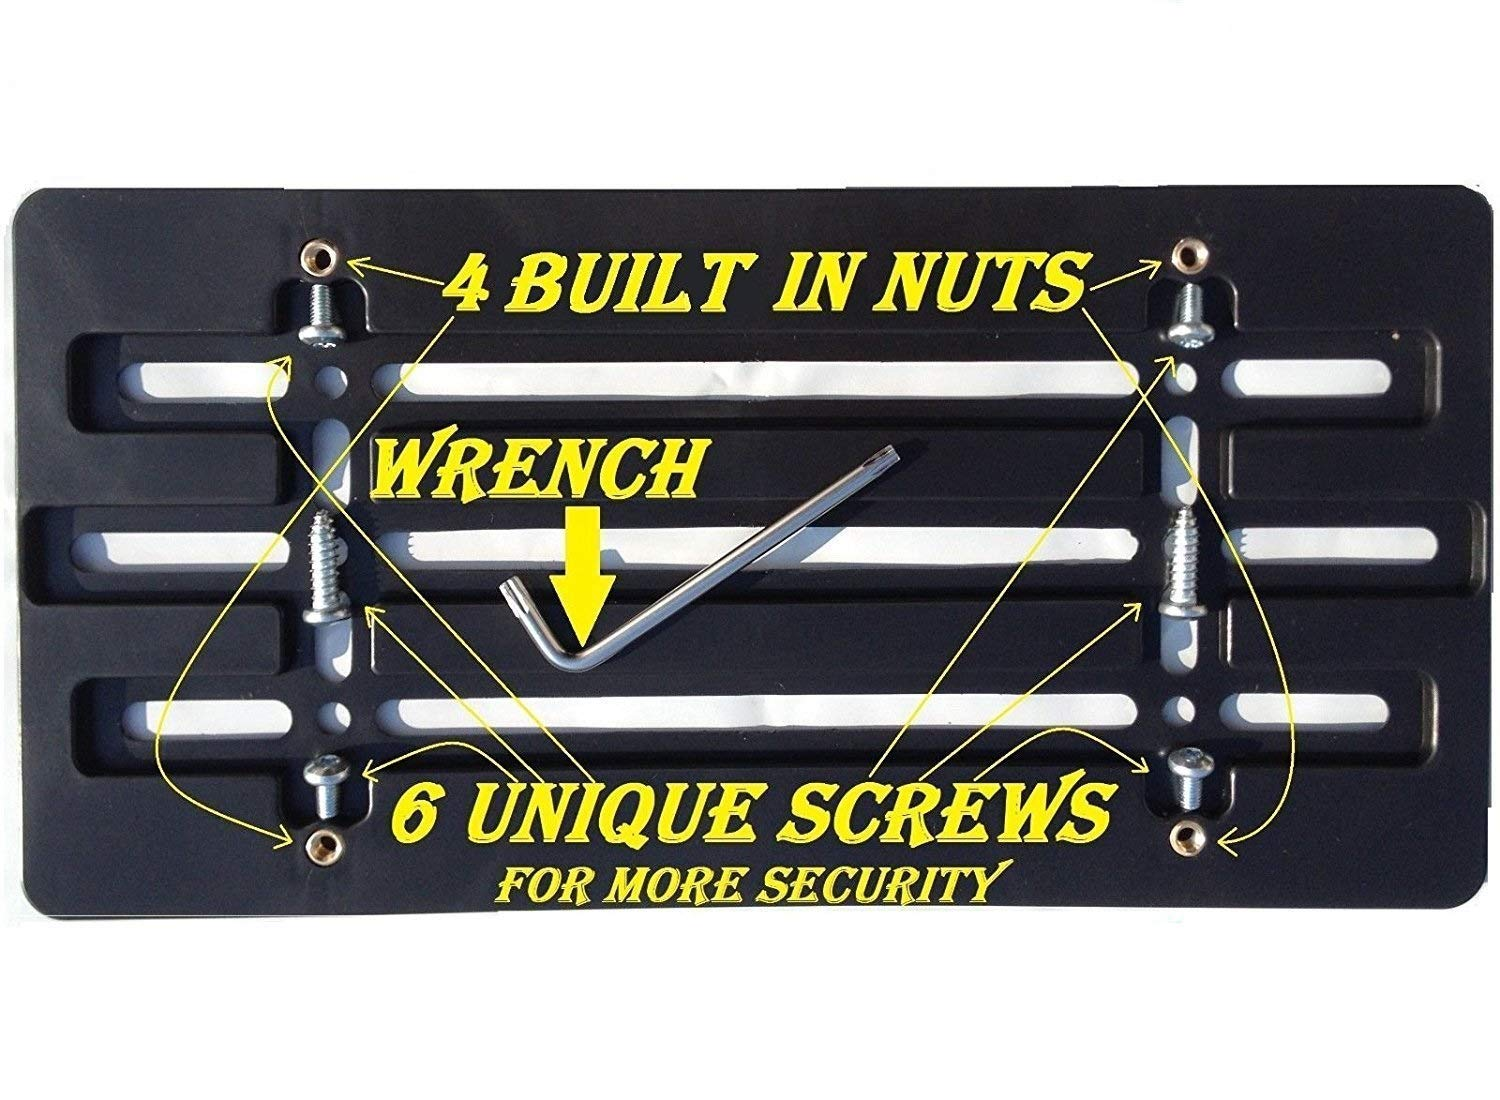 Trunknets Inc Universal Front Bumper License Plate Bracket + 6 Unique Screws and Wrench Kit